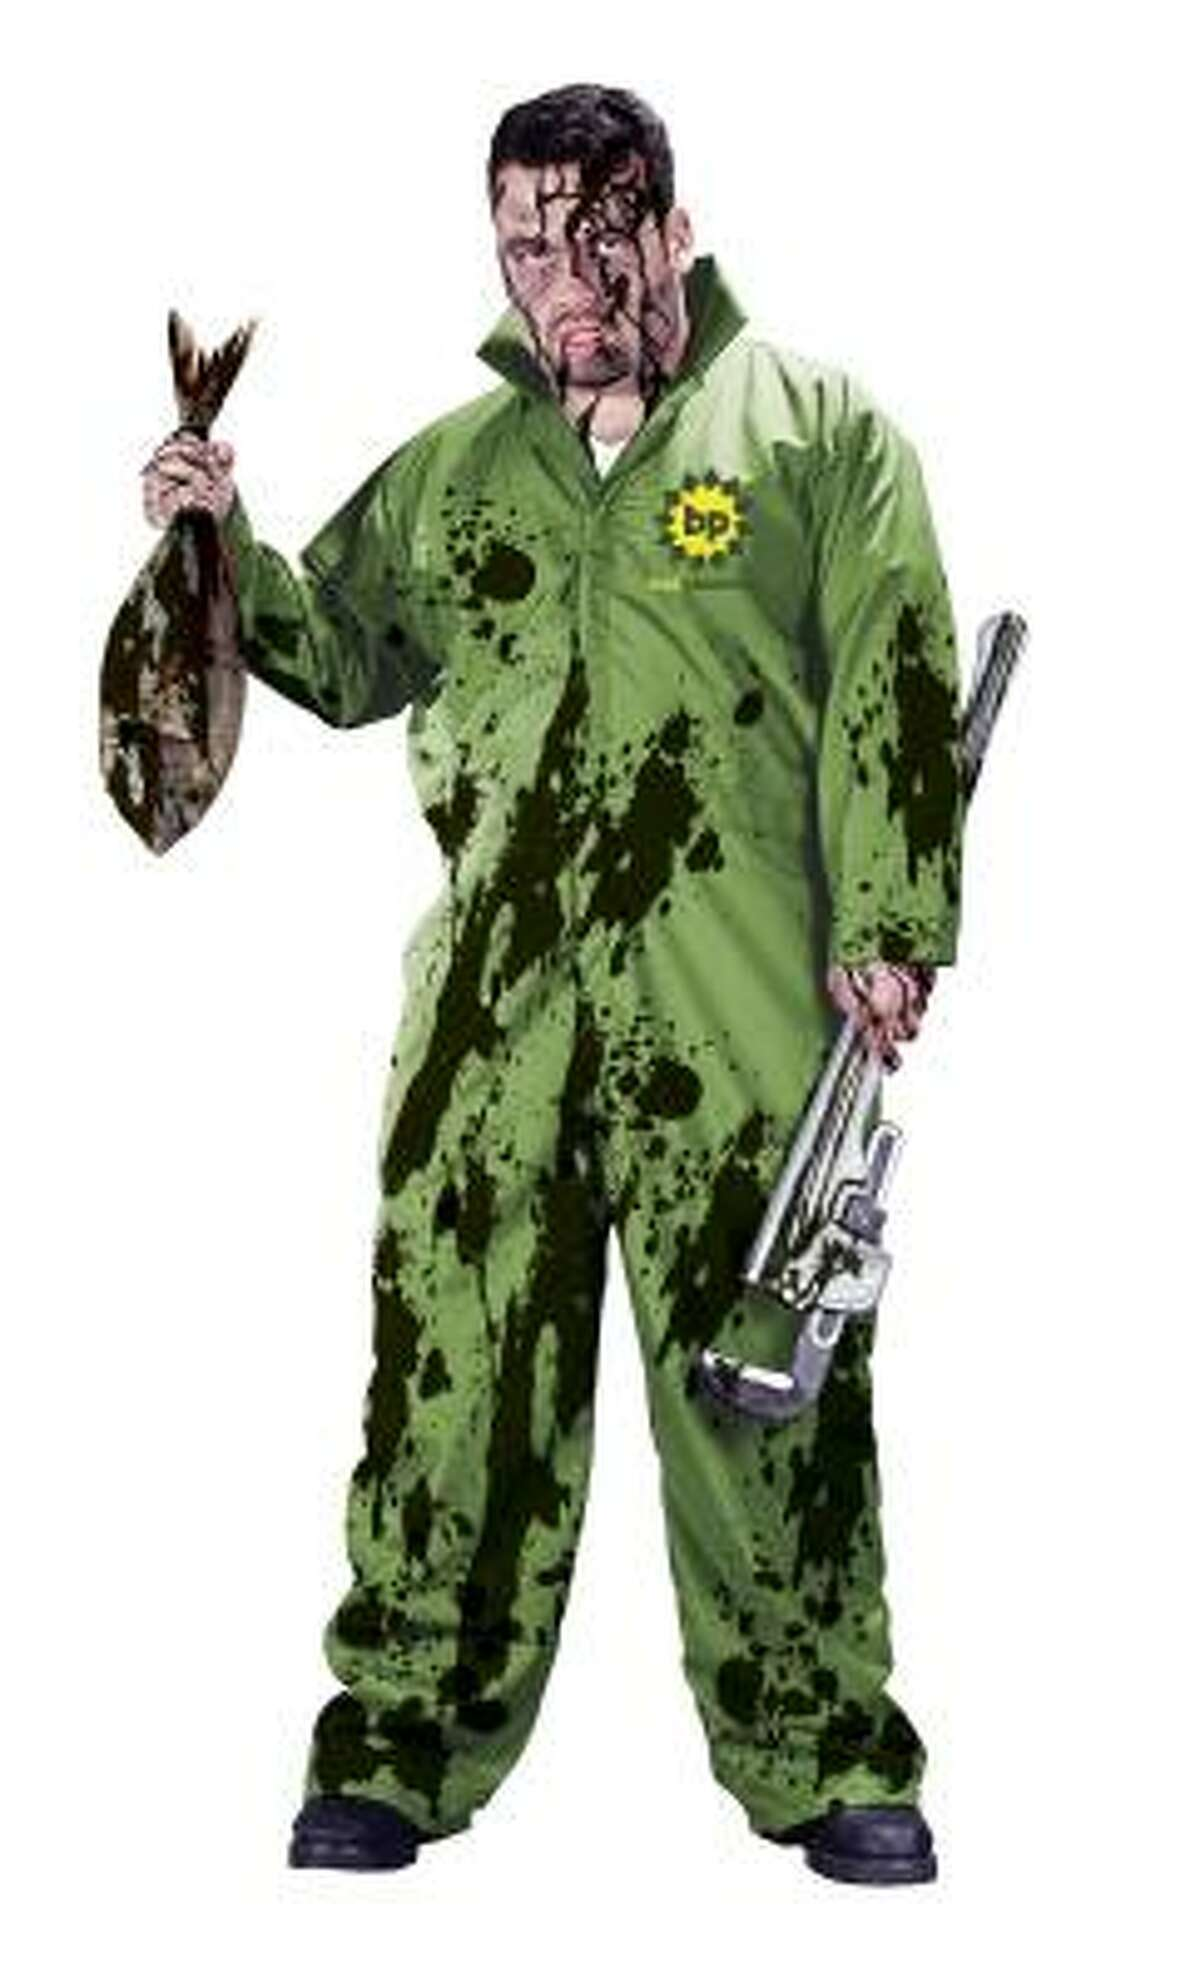 The BP Oil Spill Halloween costume, by Fun World in New York, features a green jumpsuit covered in oil spots.